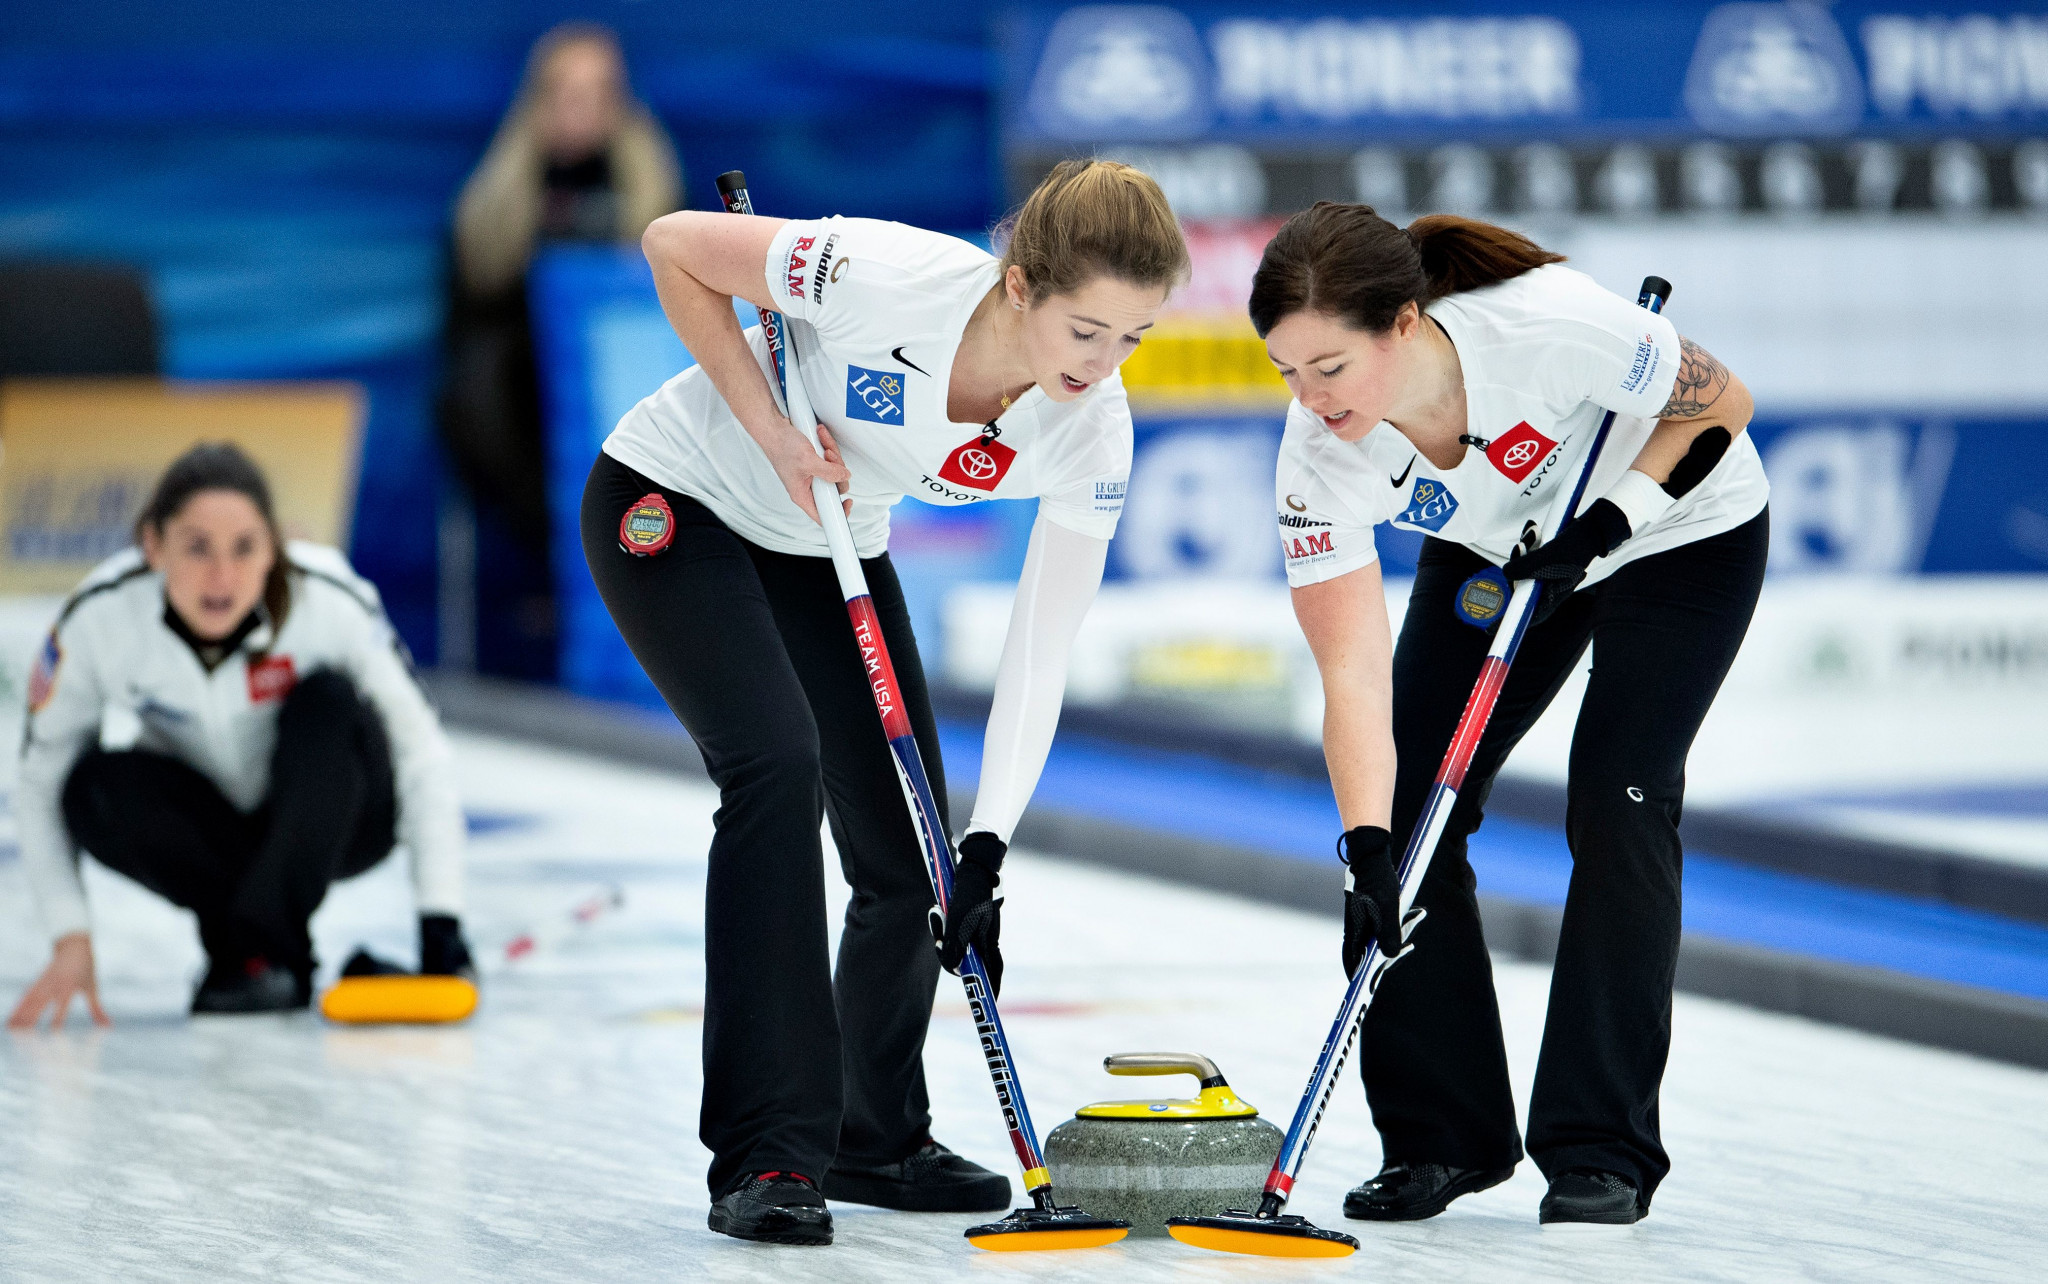 USA Curling announces high performance programme athletes for 2019-20 season